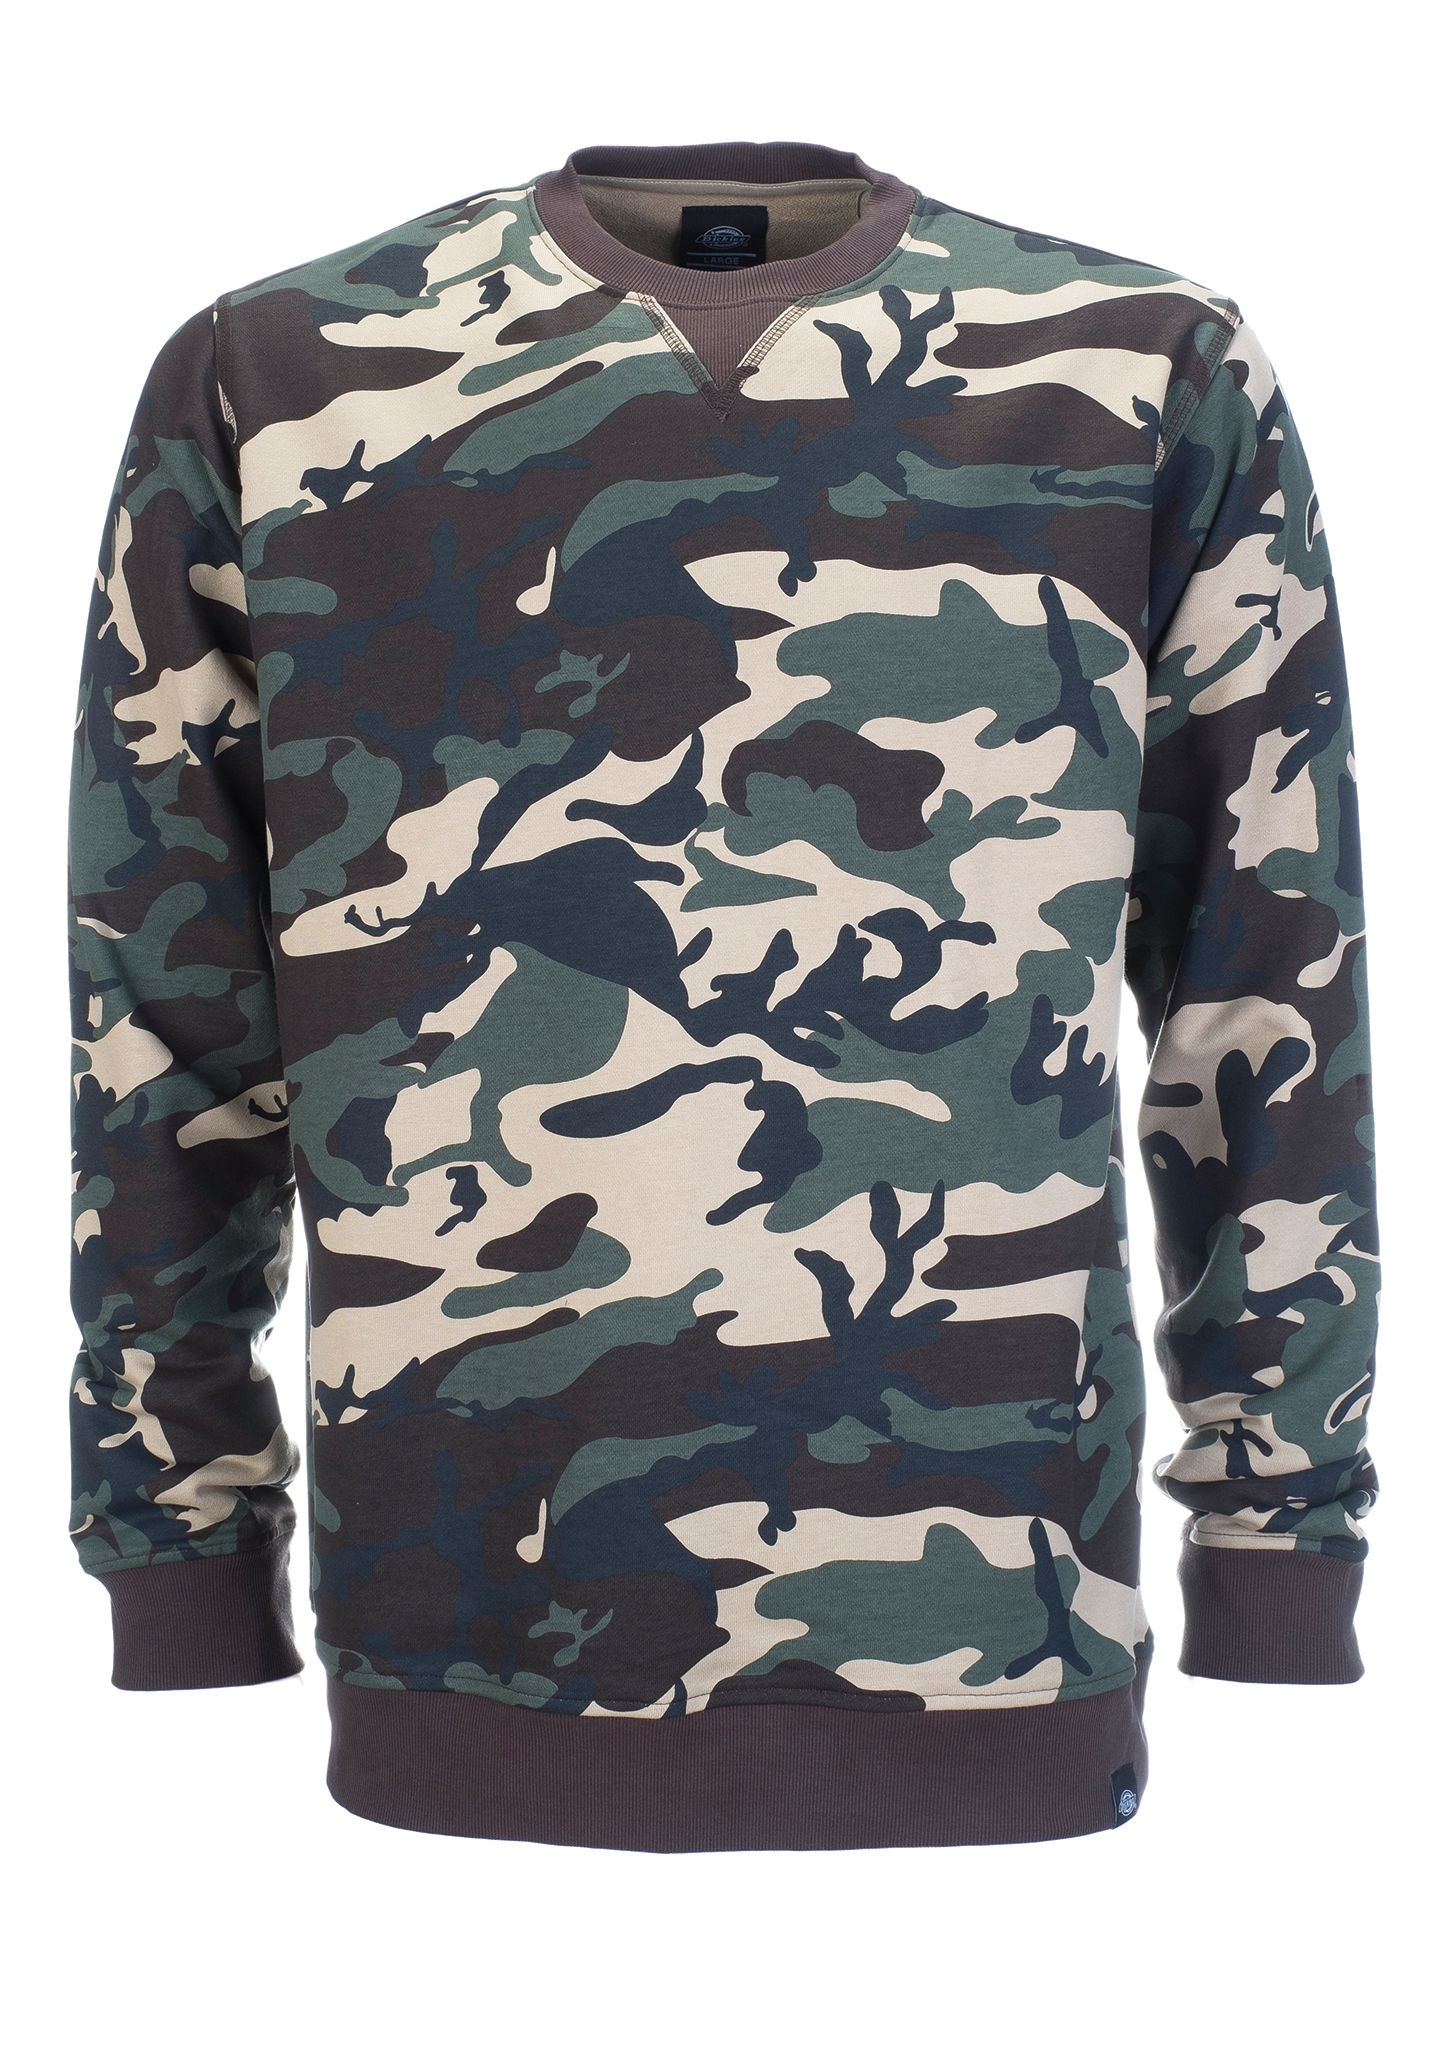 Dickies Washington - Sweatshirt for Men - Camo - Planet Sports 6604a492219